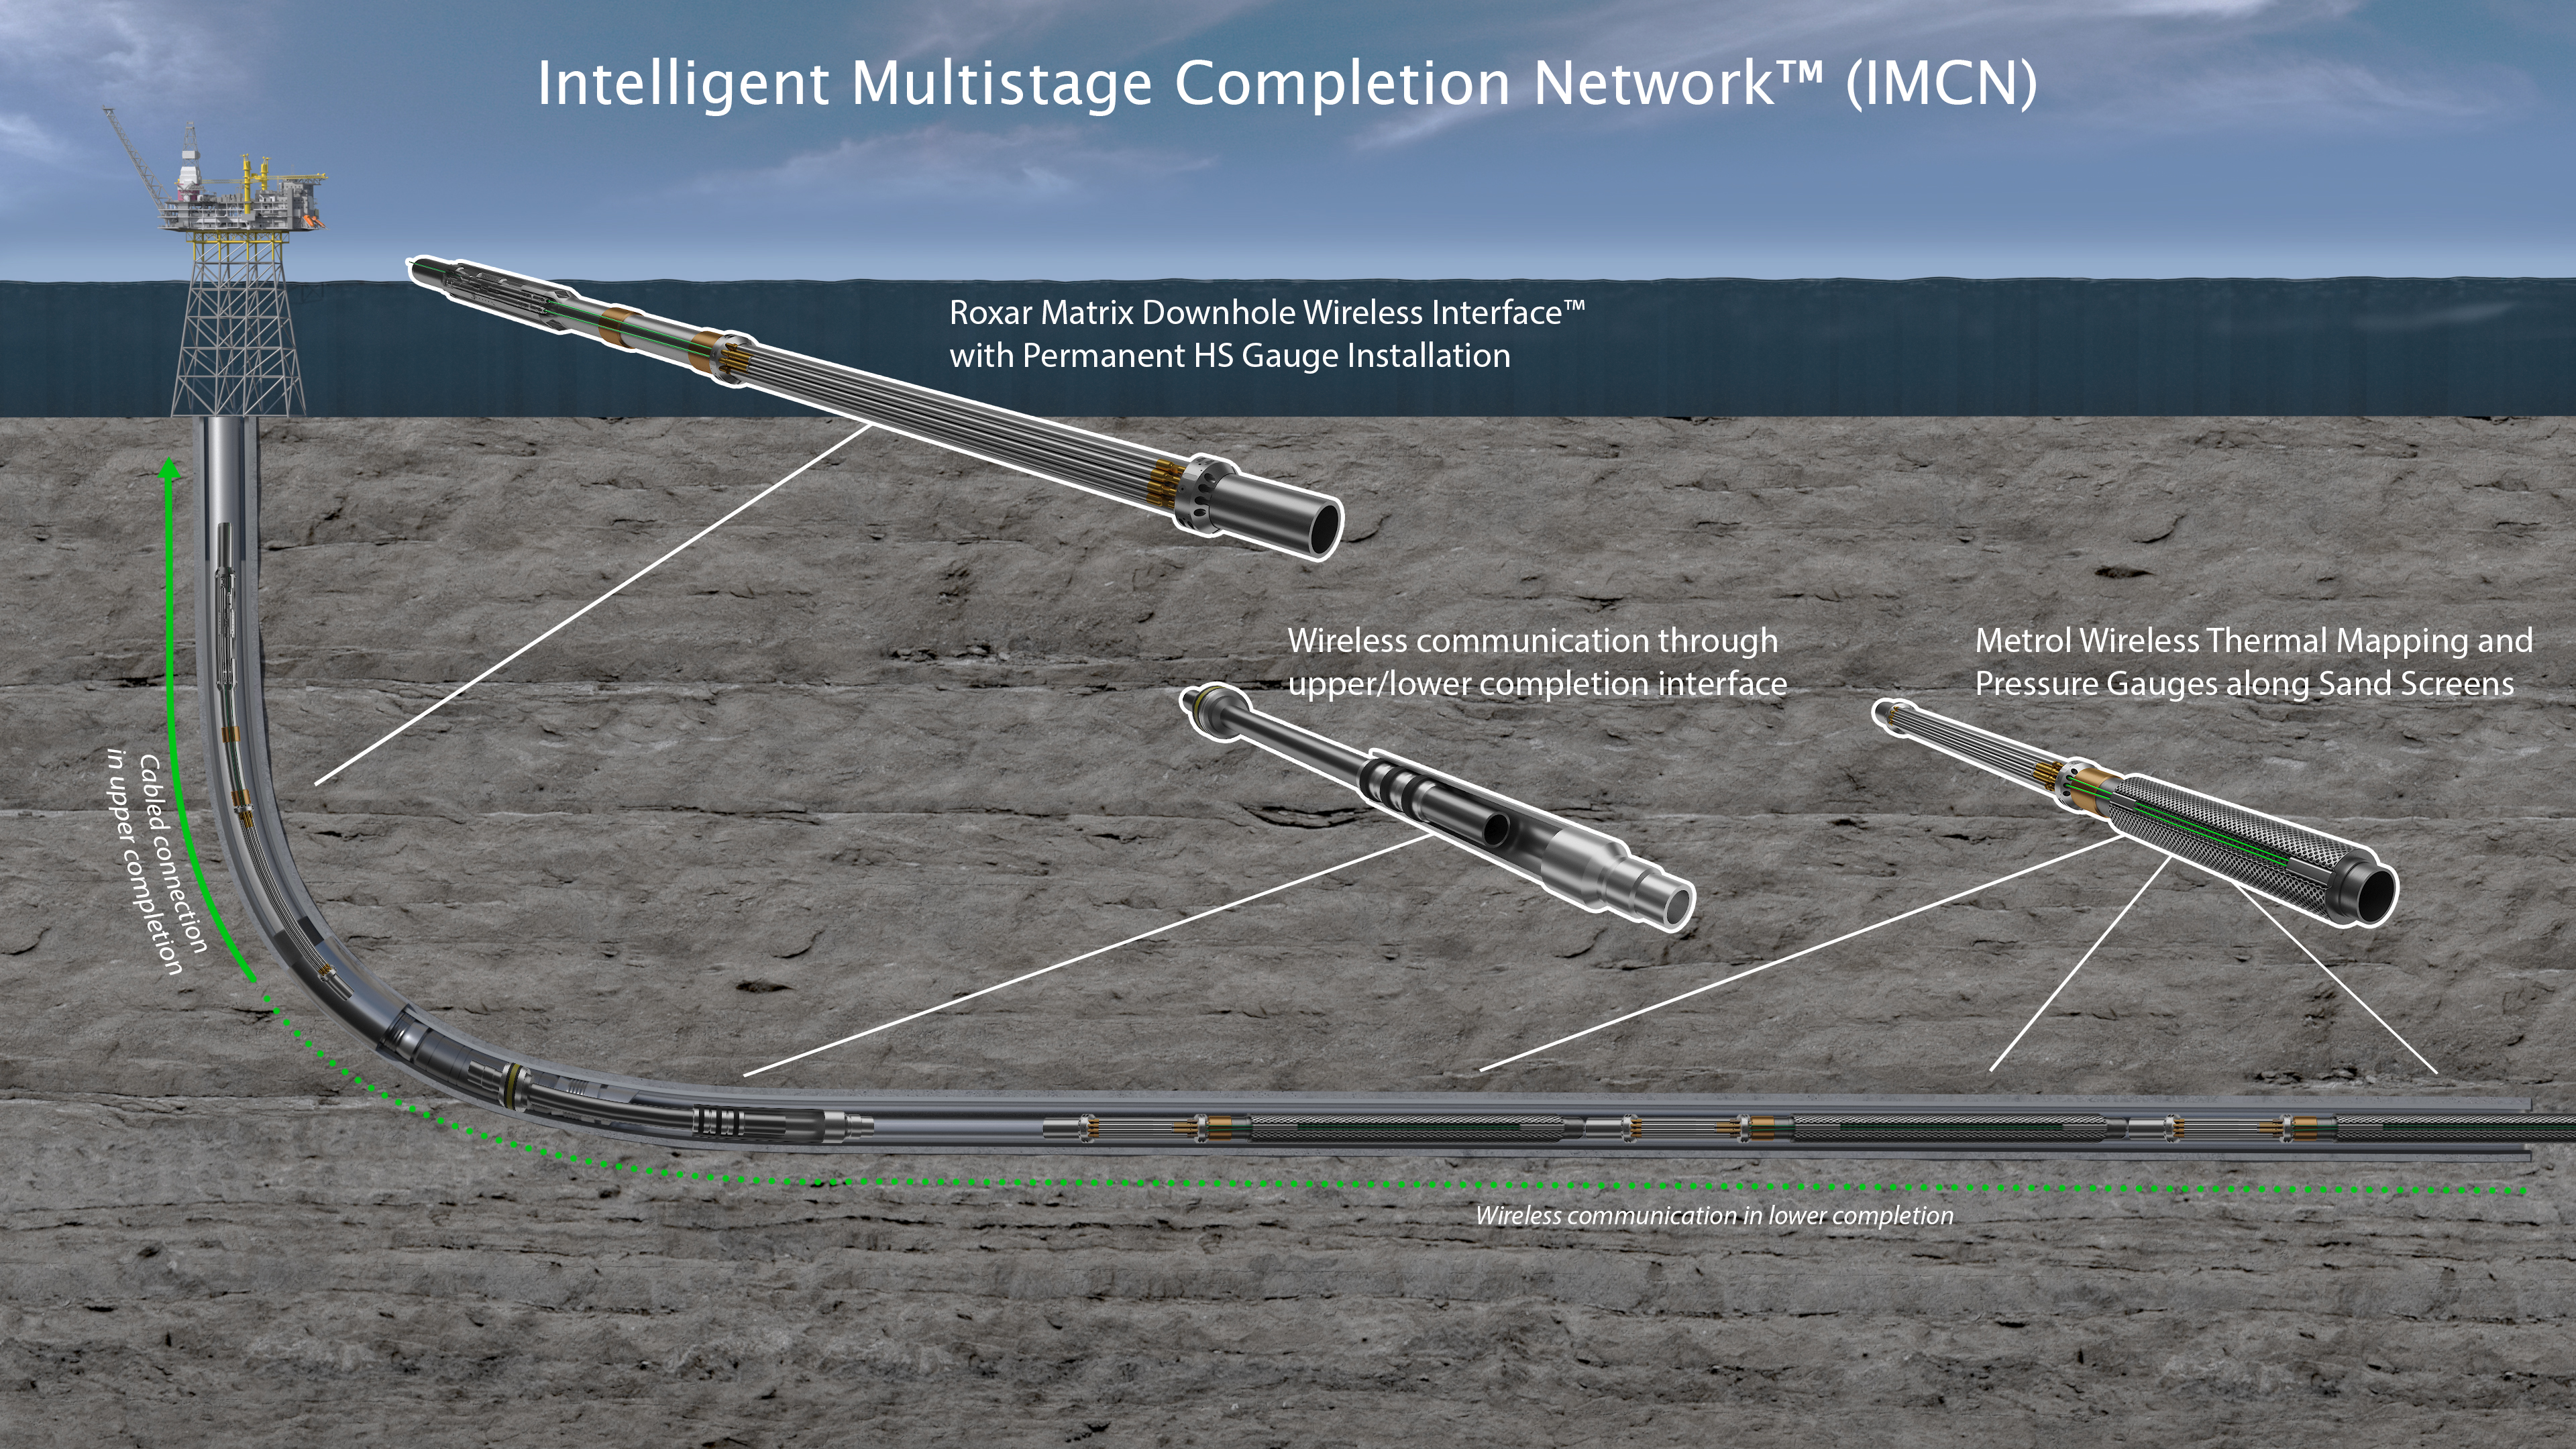 FIGURE 2. The Intelligent Multistage Completion Network integrates an upper and lower completions downhole system that communicates with instruments at the reservoir sandface. (Source: Emerson Automation Solutions)